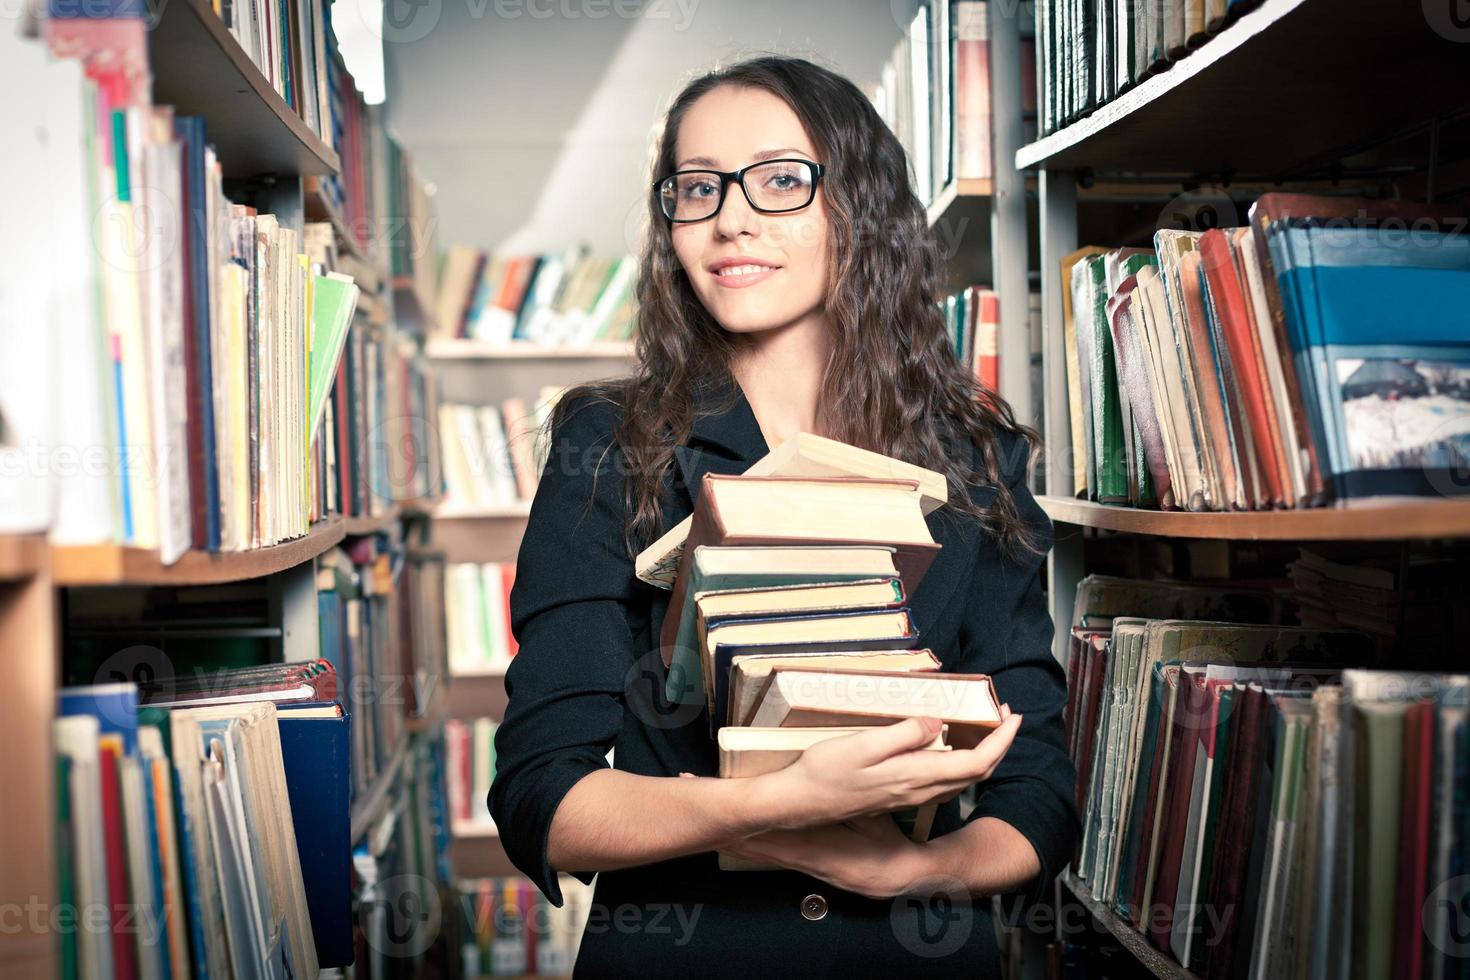 brunette woman at library photo